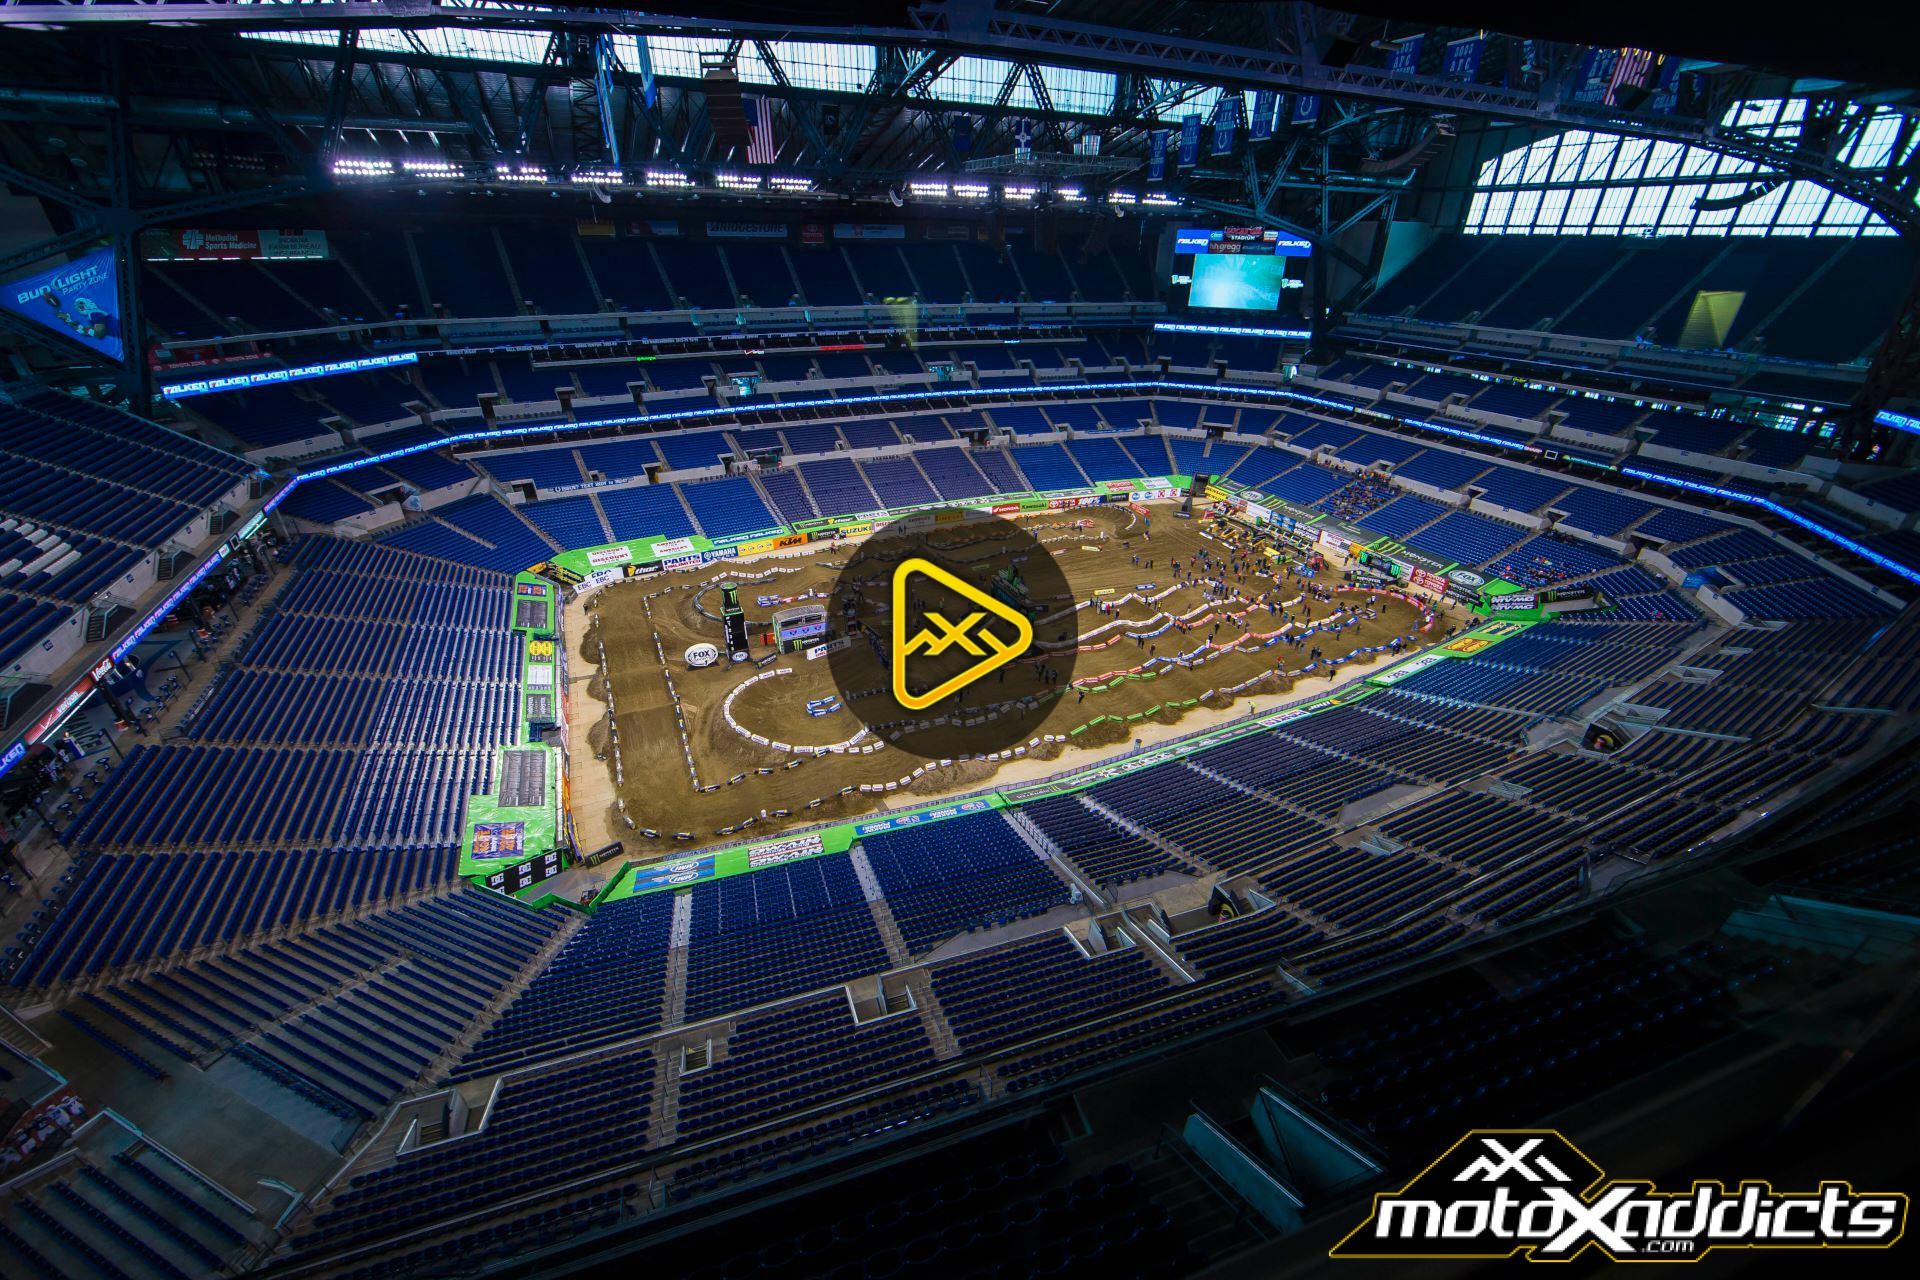 Watch Qualifying Live from 2017 Indianapolis SX